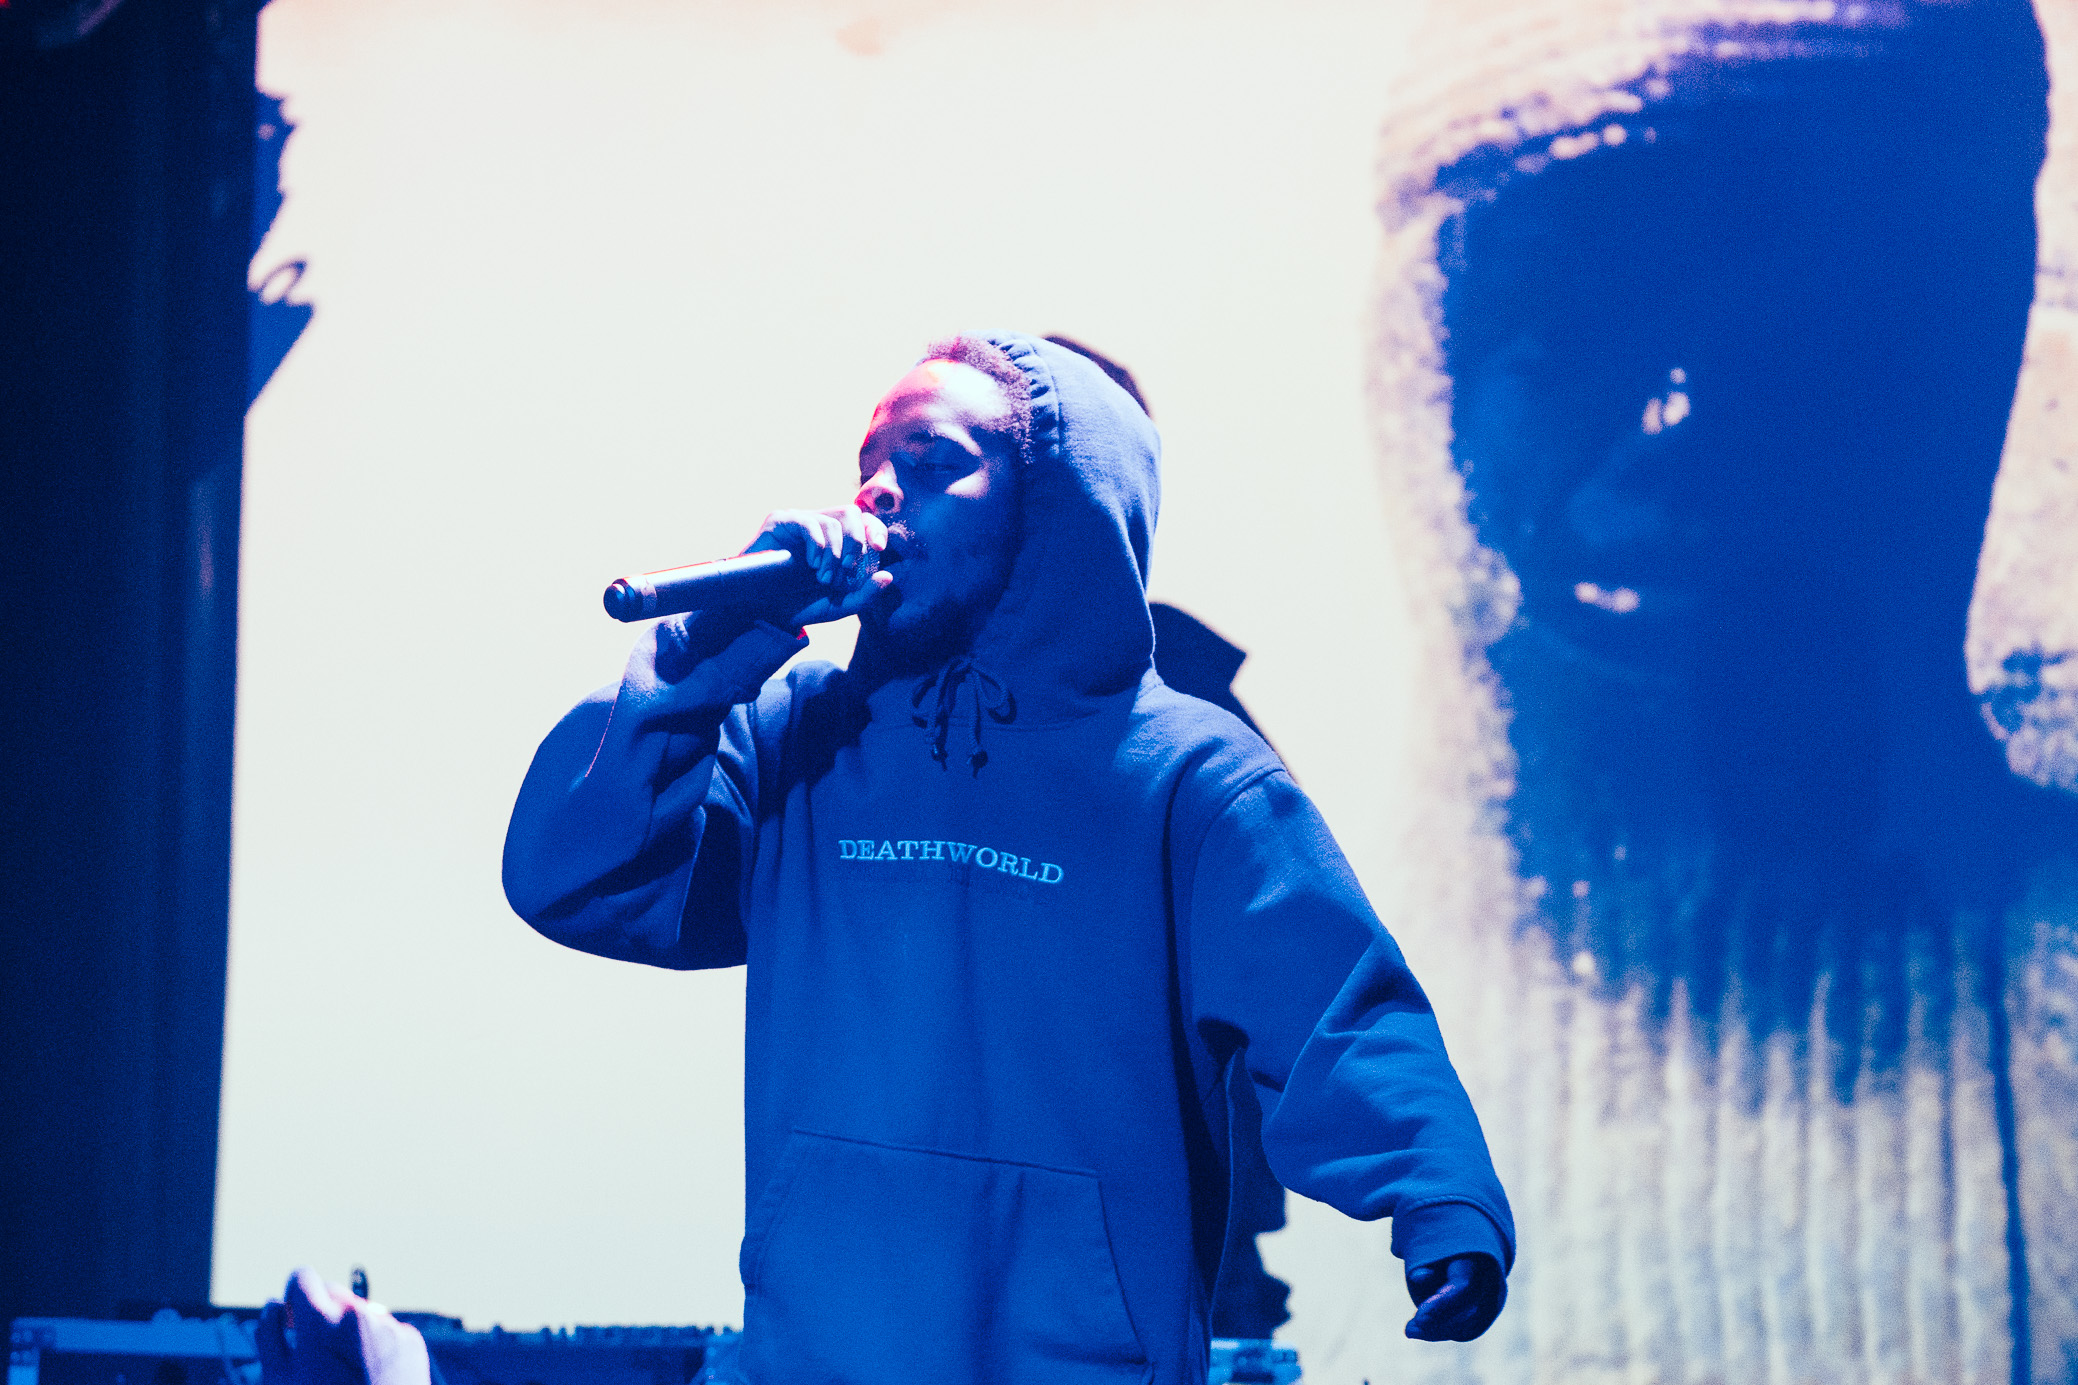 Earl Sweatshirt performs in concert at Saturn Birmingham in Birmingham, Alabama on May 5th, 2019. (Photo by David A. Smith / DSmithScenes)